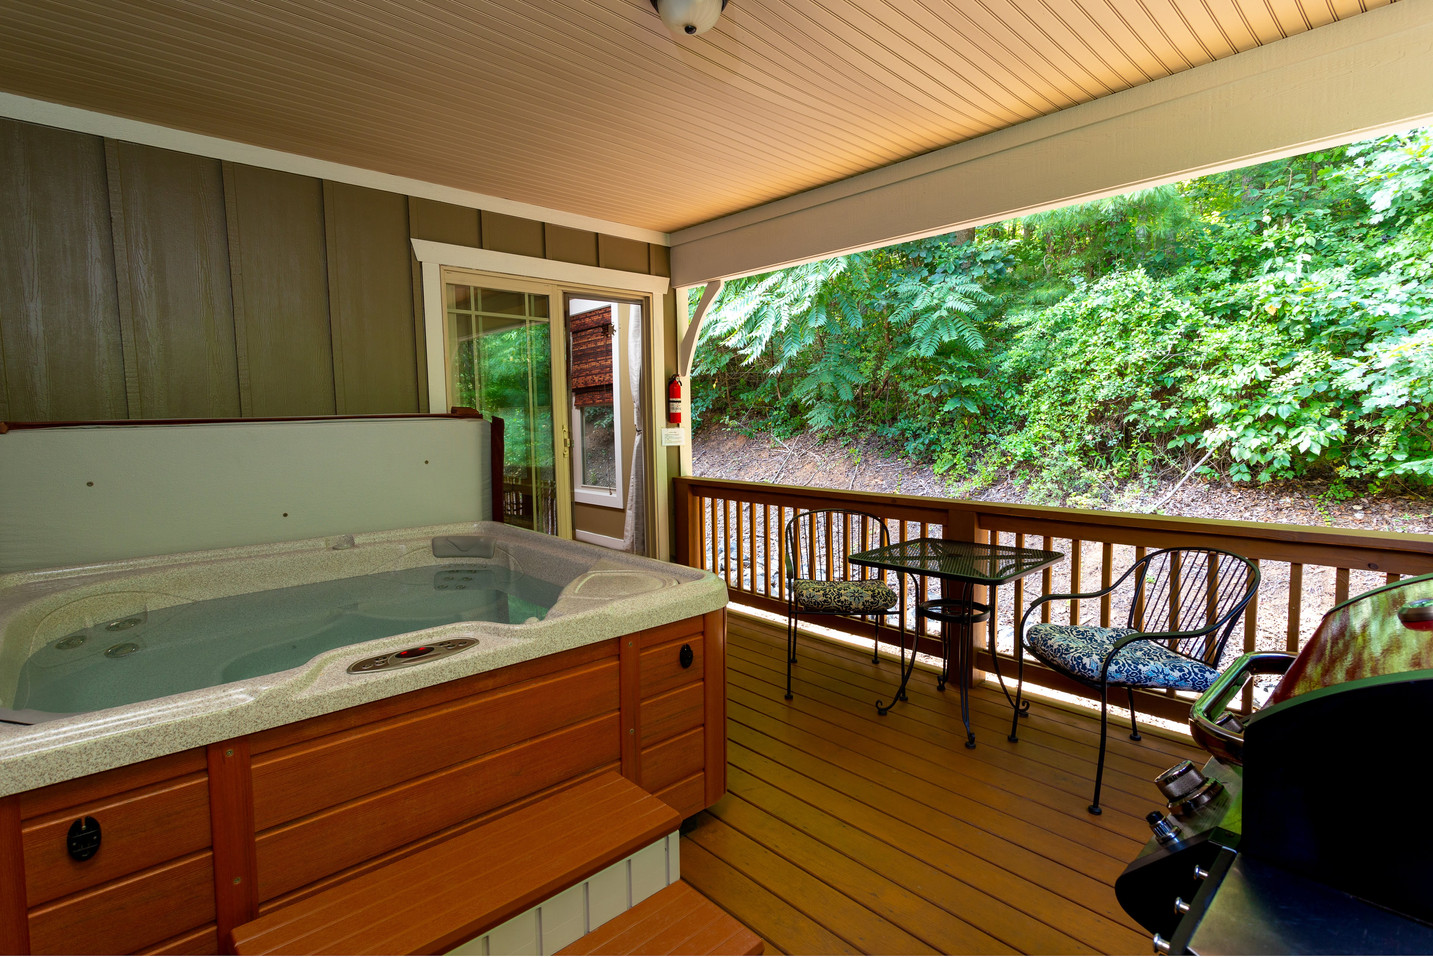 Cystal clear hot tub